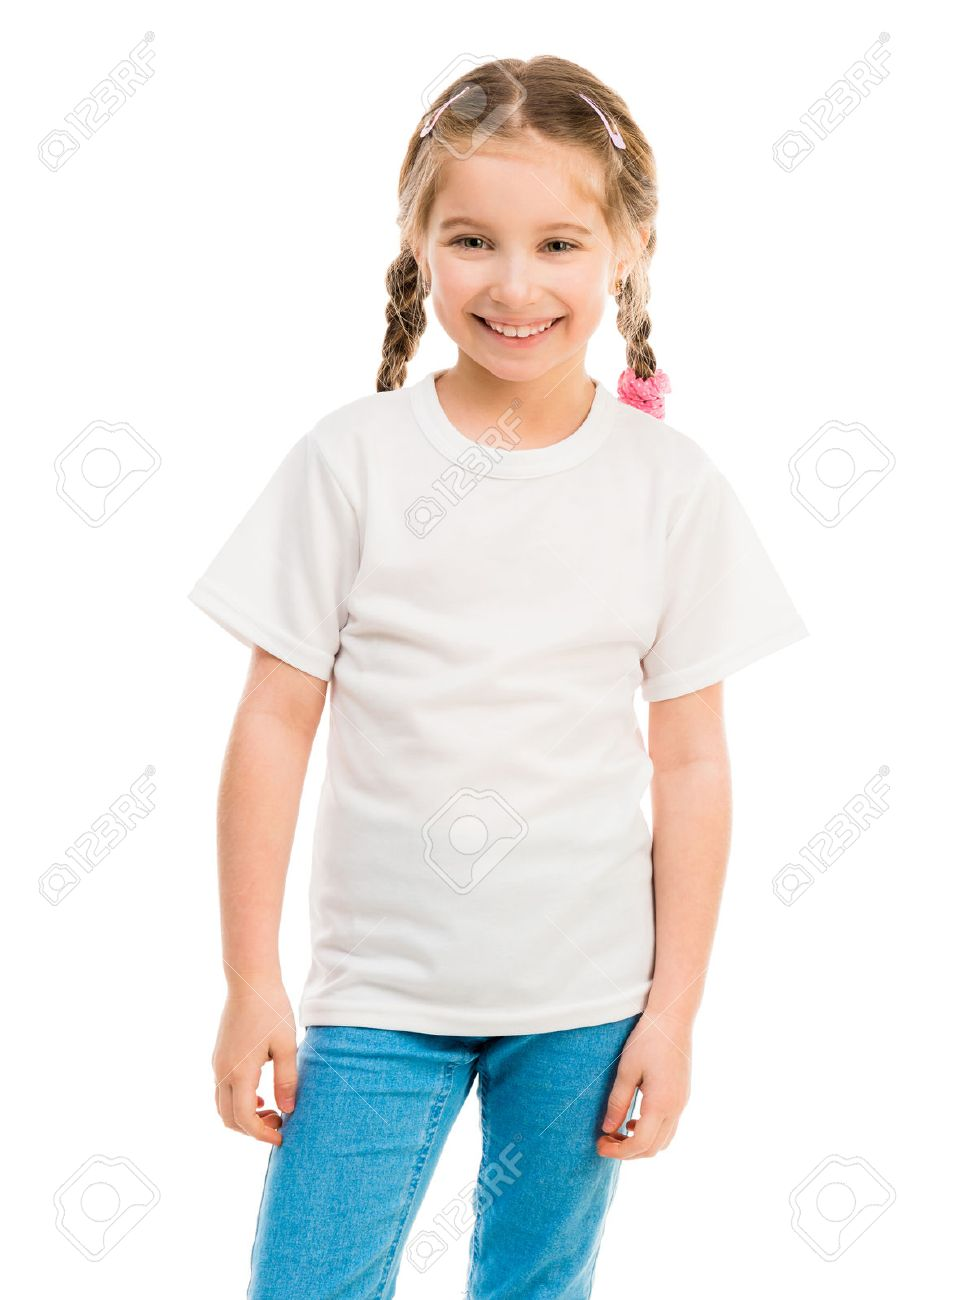 White t shirt and blue jeans - Stock Photo Cute Little Girl In A White T Shirt And Blue Jeans On A White Background